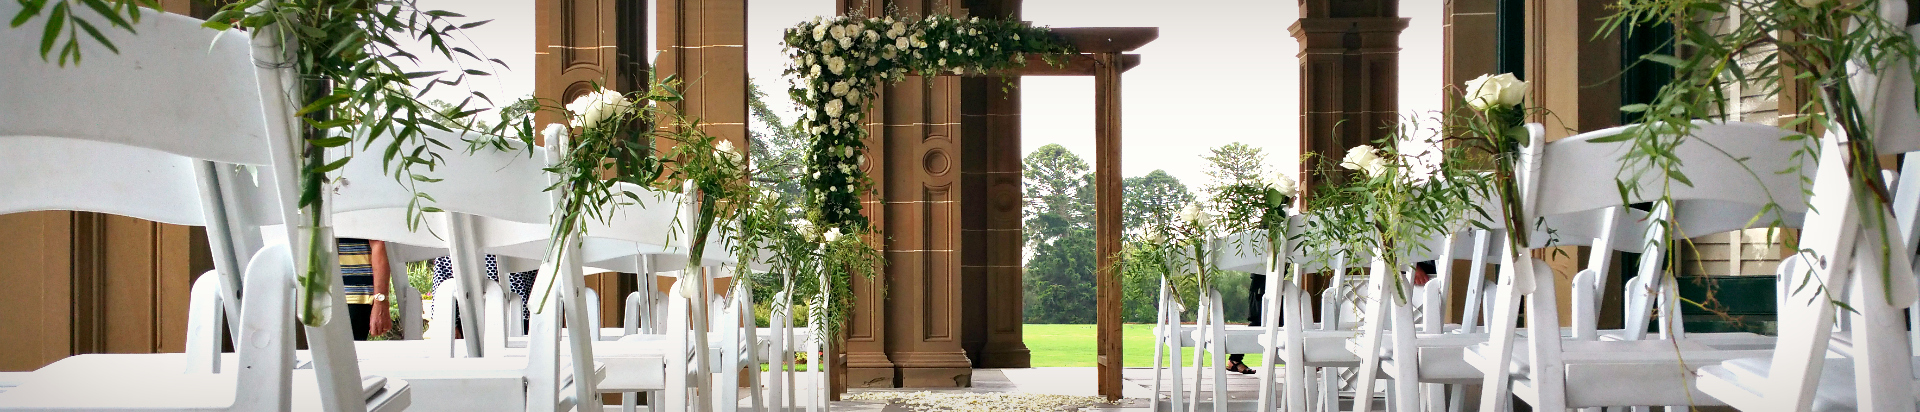 Timber wedding arch